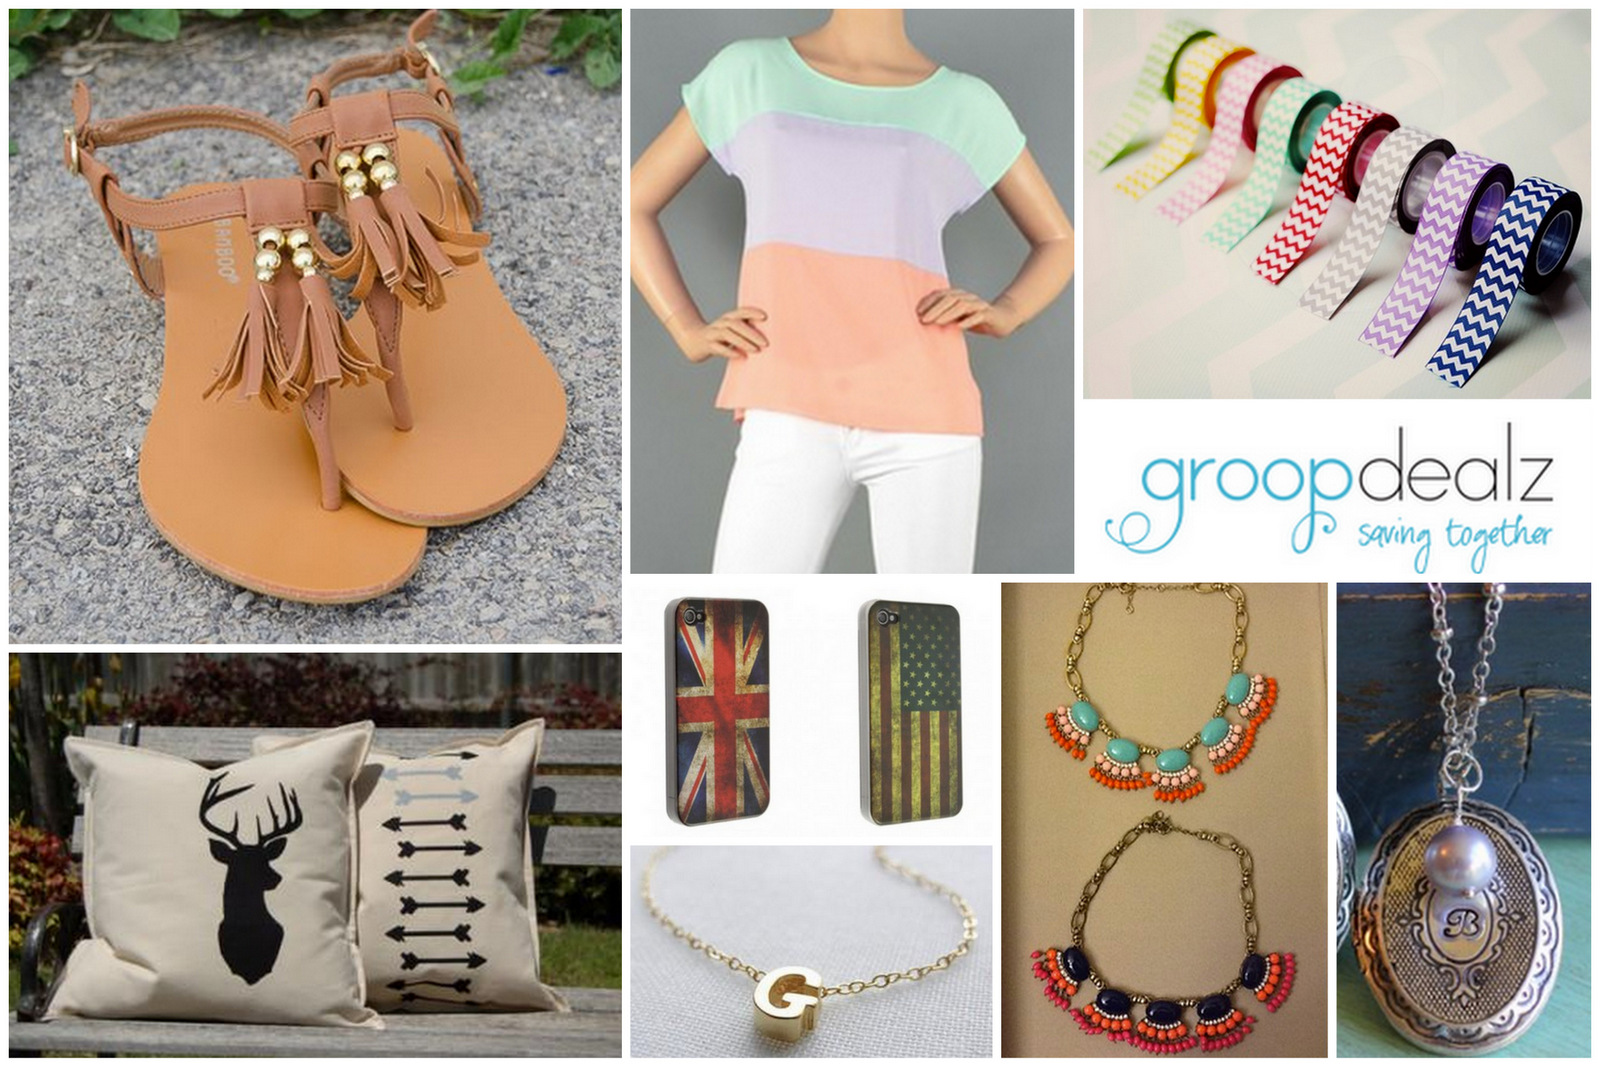 Discount Boutique Deals for Women and Children  Groopdealz